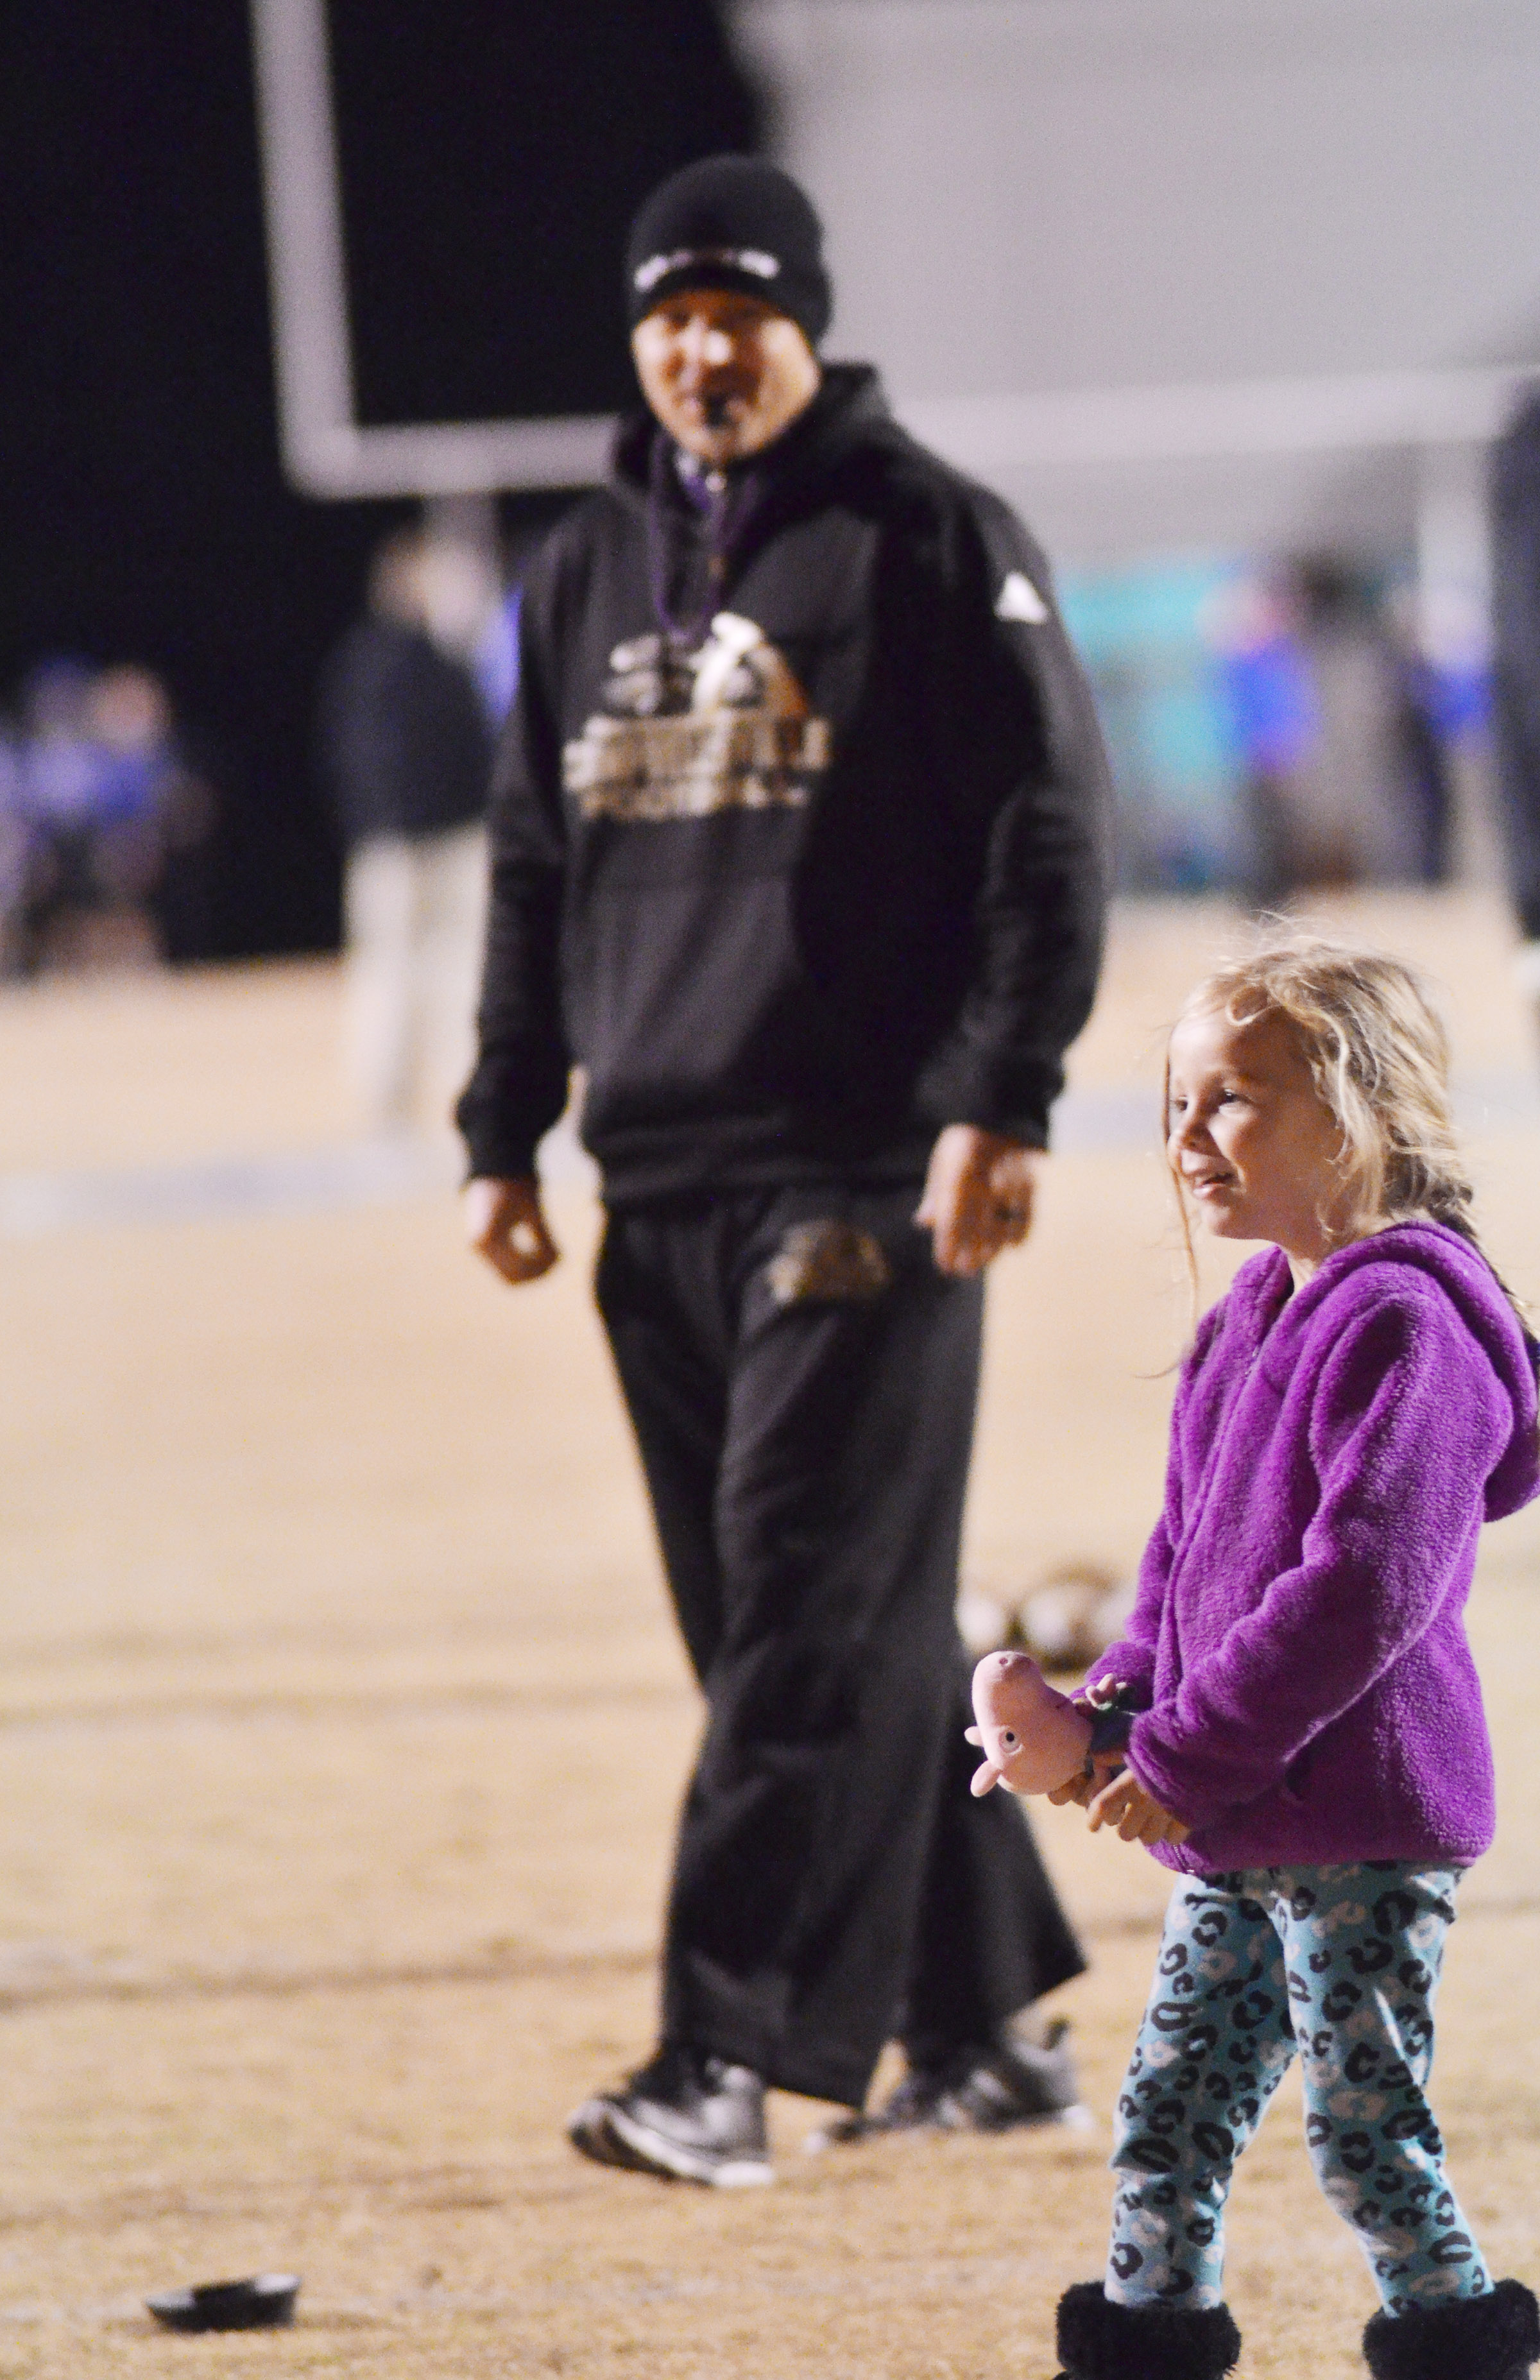 Campbellsville Elementary School kindergartener Trinidy Gribbins watches as her dad, Robbie, coaches the CHS football team.